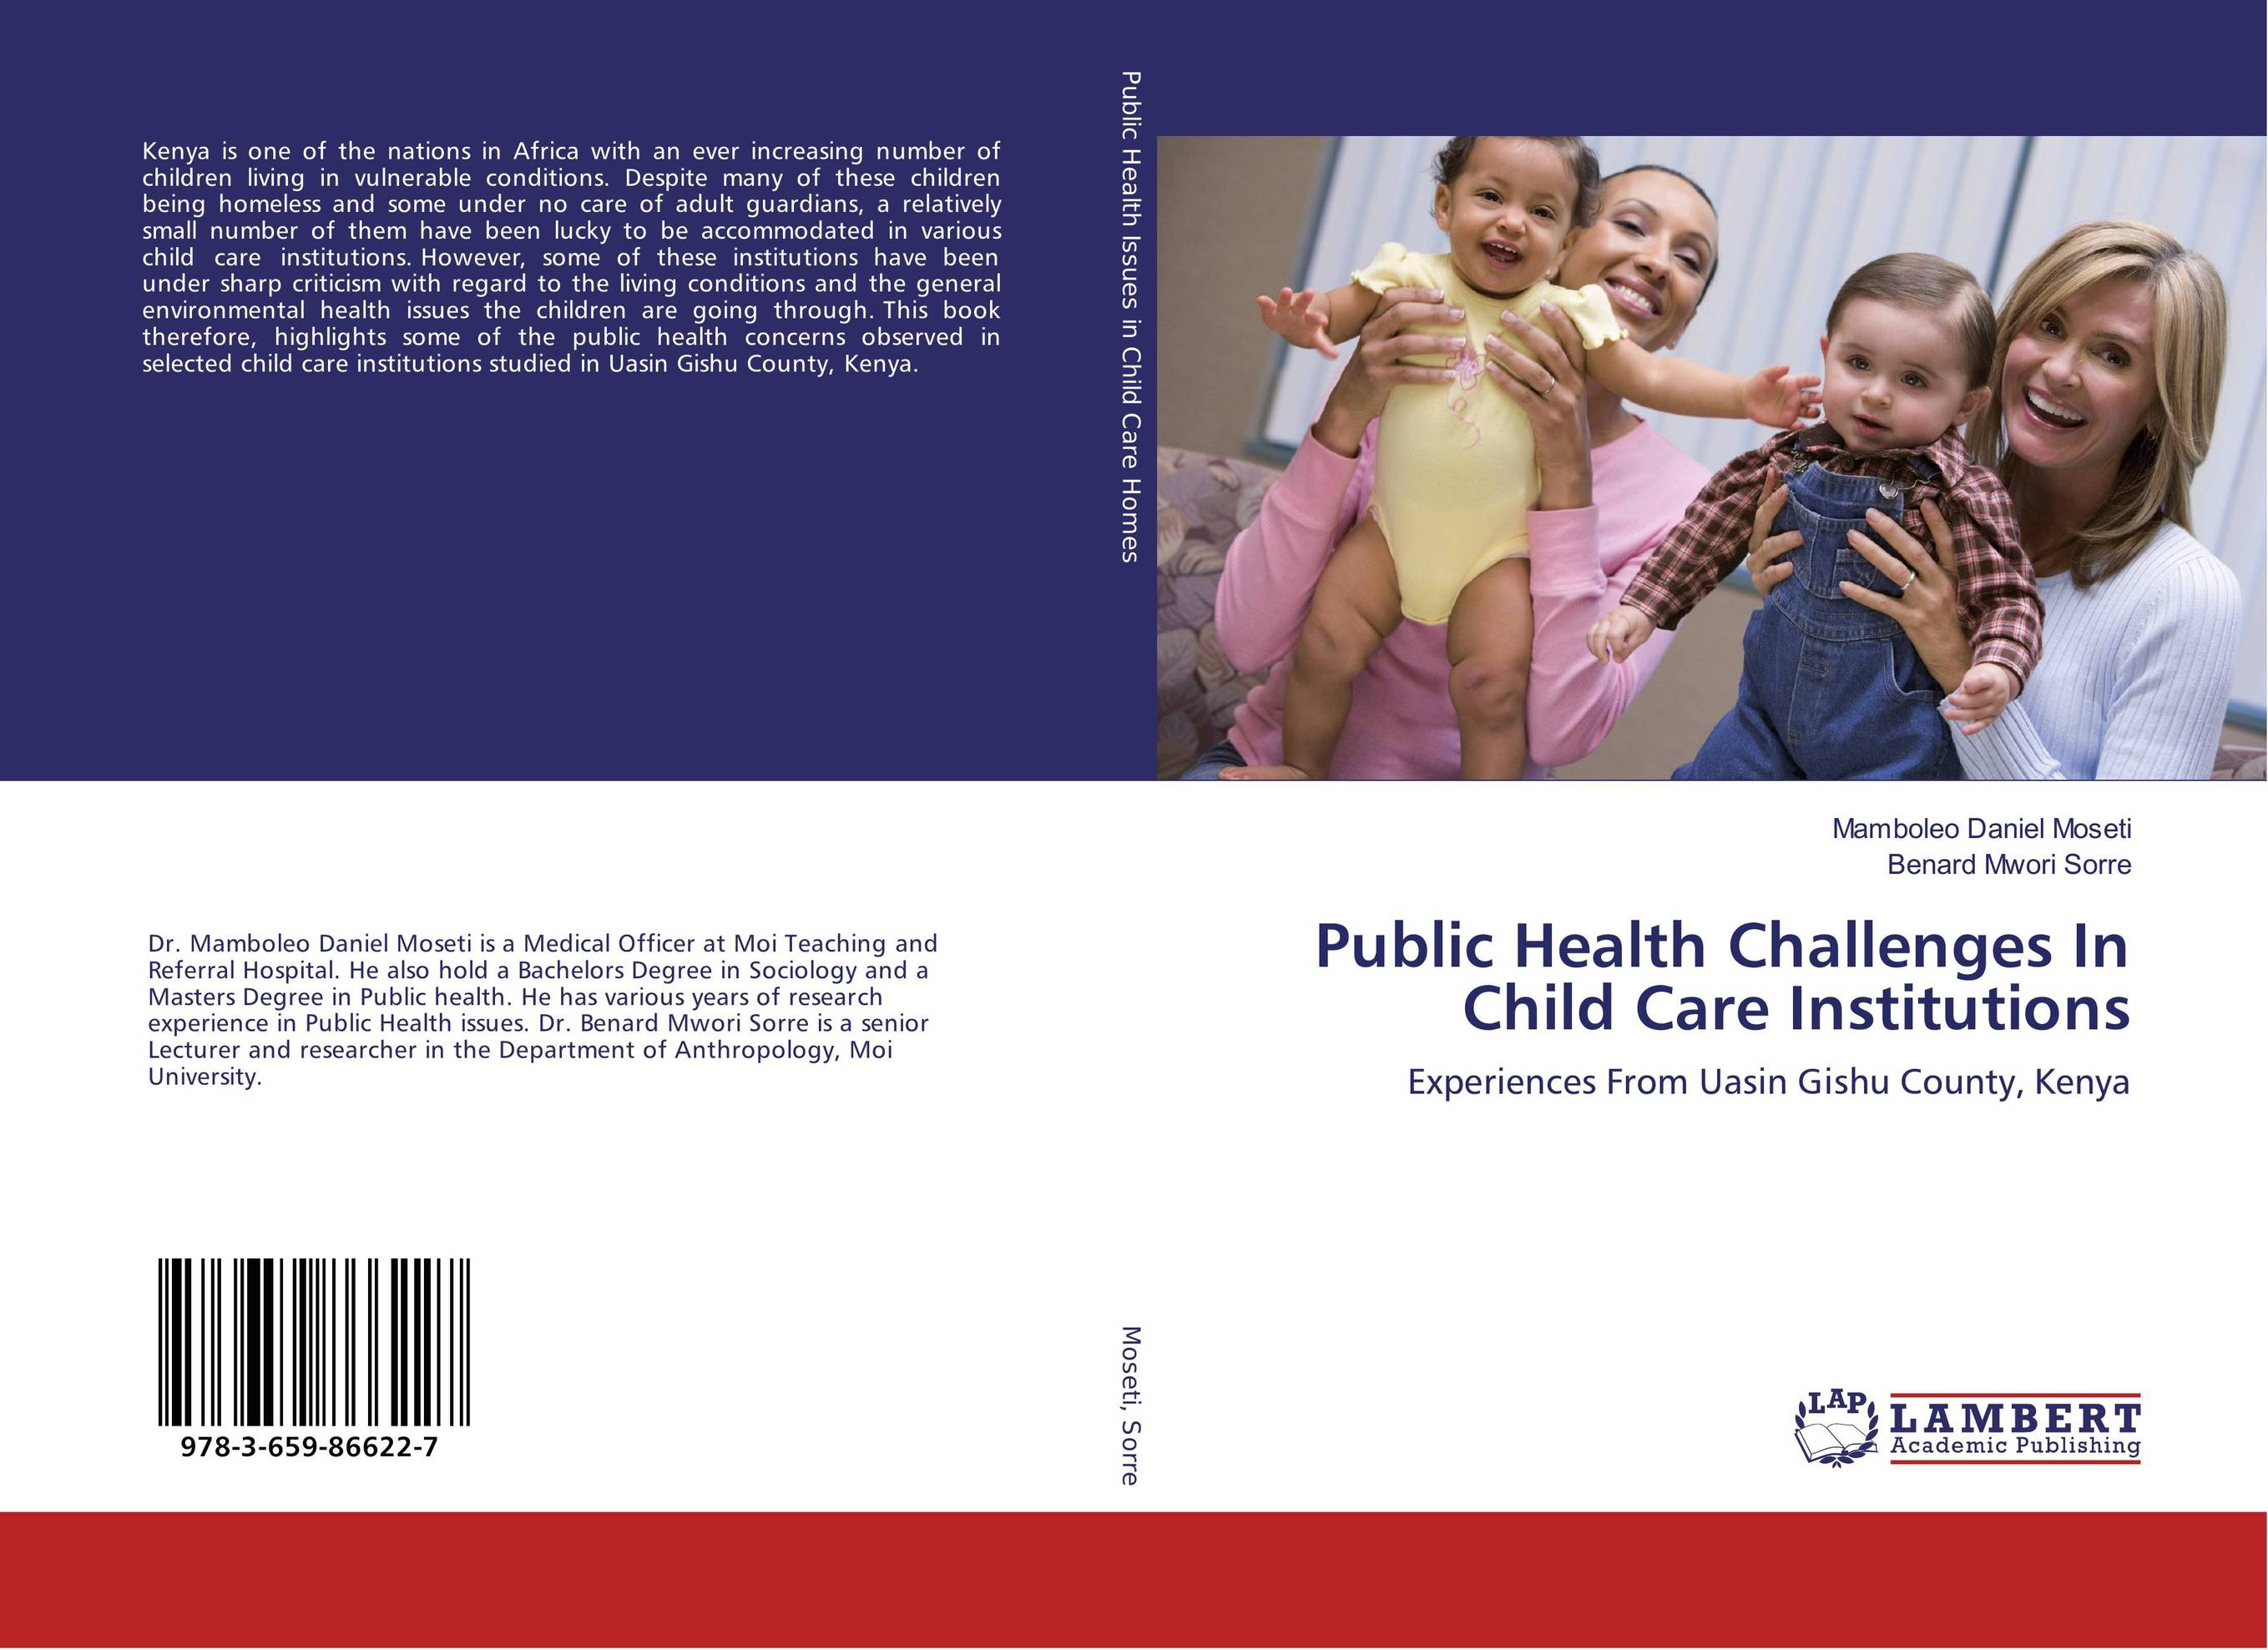 Public Health Challenges In Child Care Institutions epilepsy in children psychological concerns